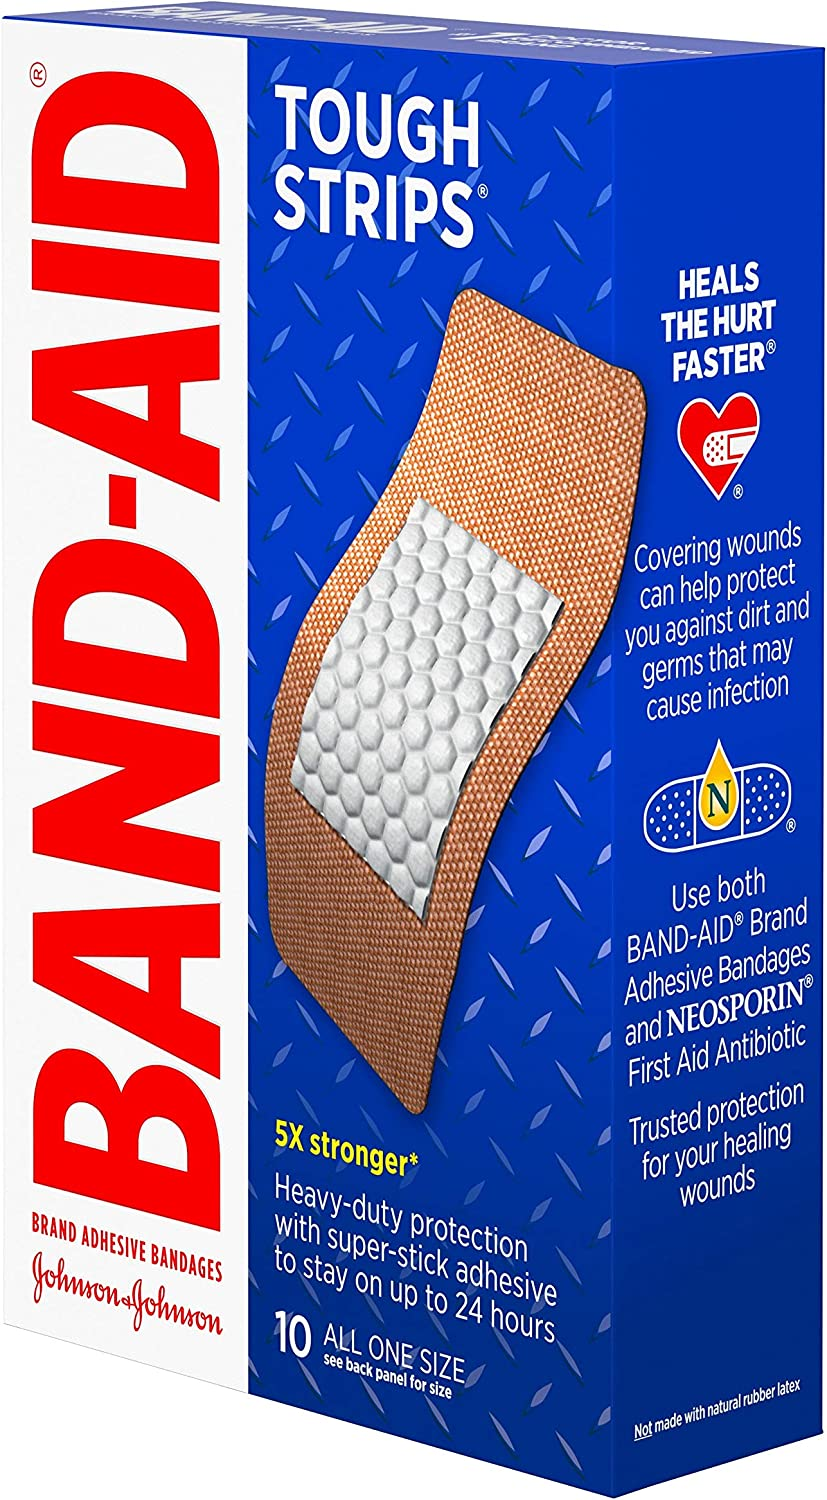 Band-Aid Brand Tough Strips Adhesive Bandages for Wound Care, Durable Protection for Minor Cuts and Scrapes, Extra Large Size, 10 ct, pack of 2: Health & Personal Care